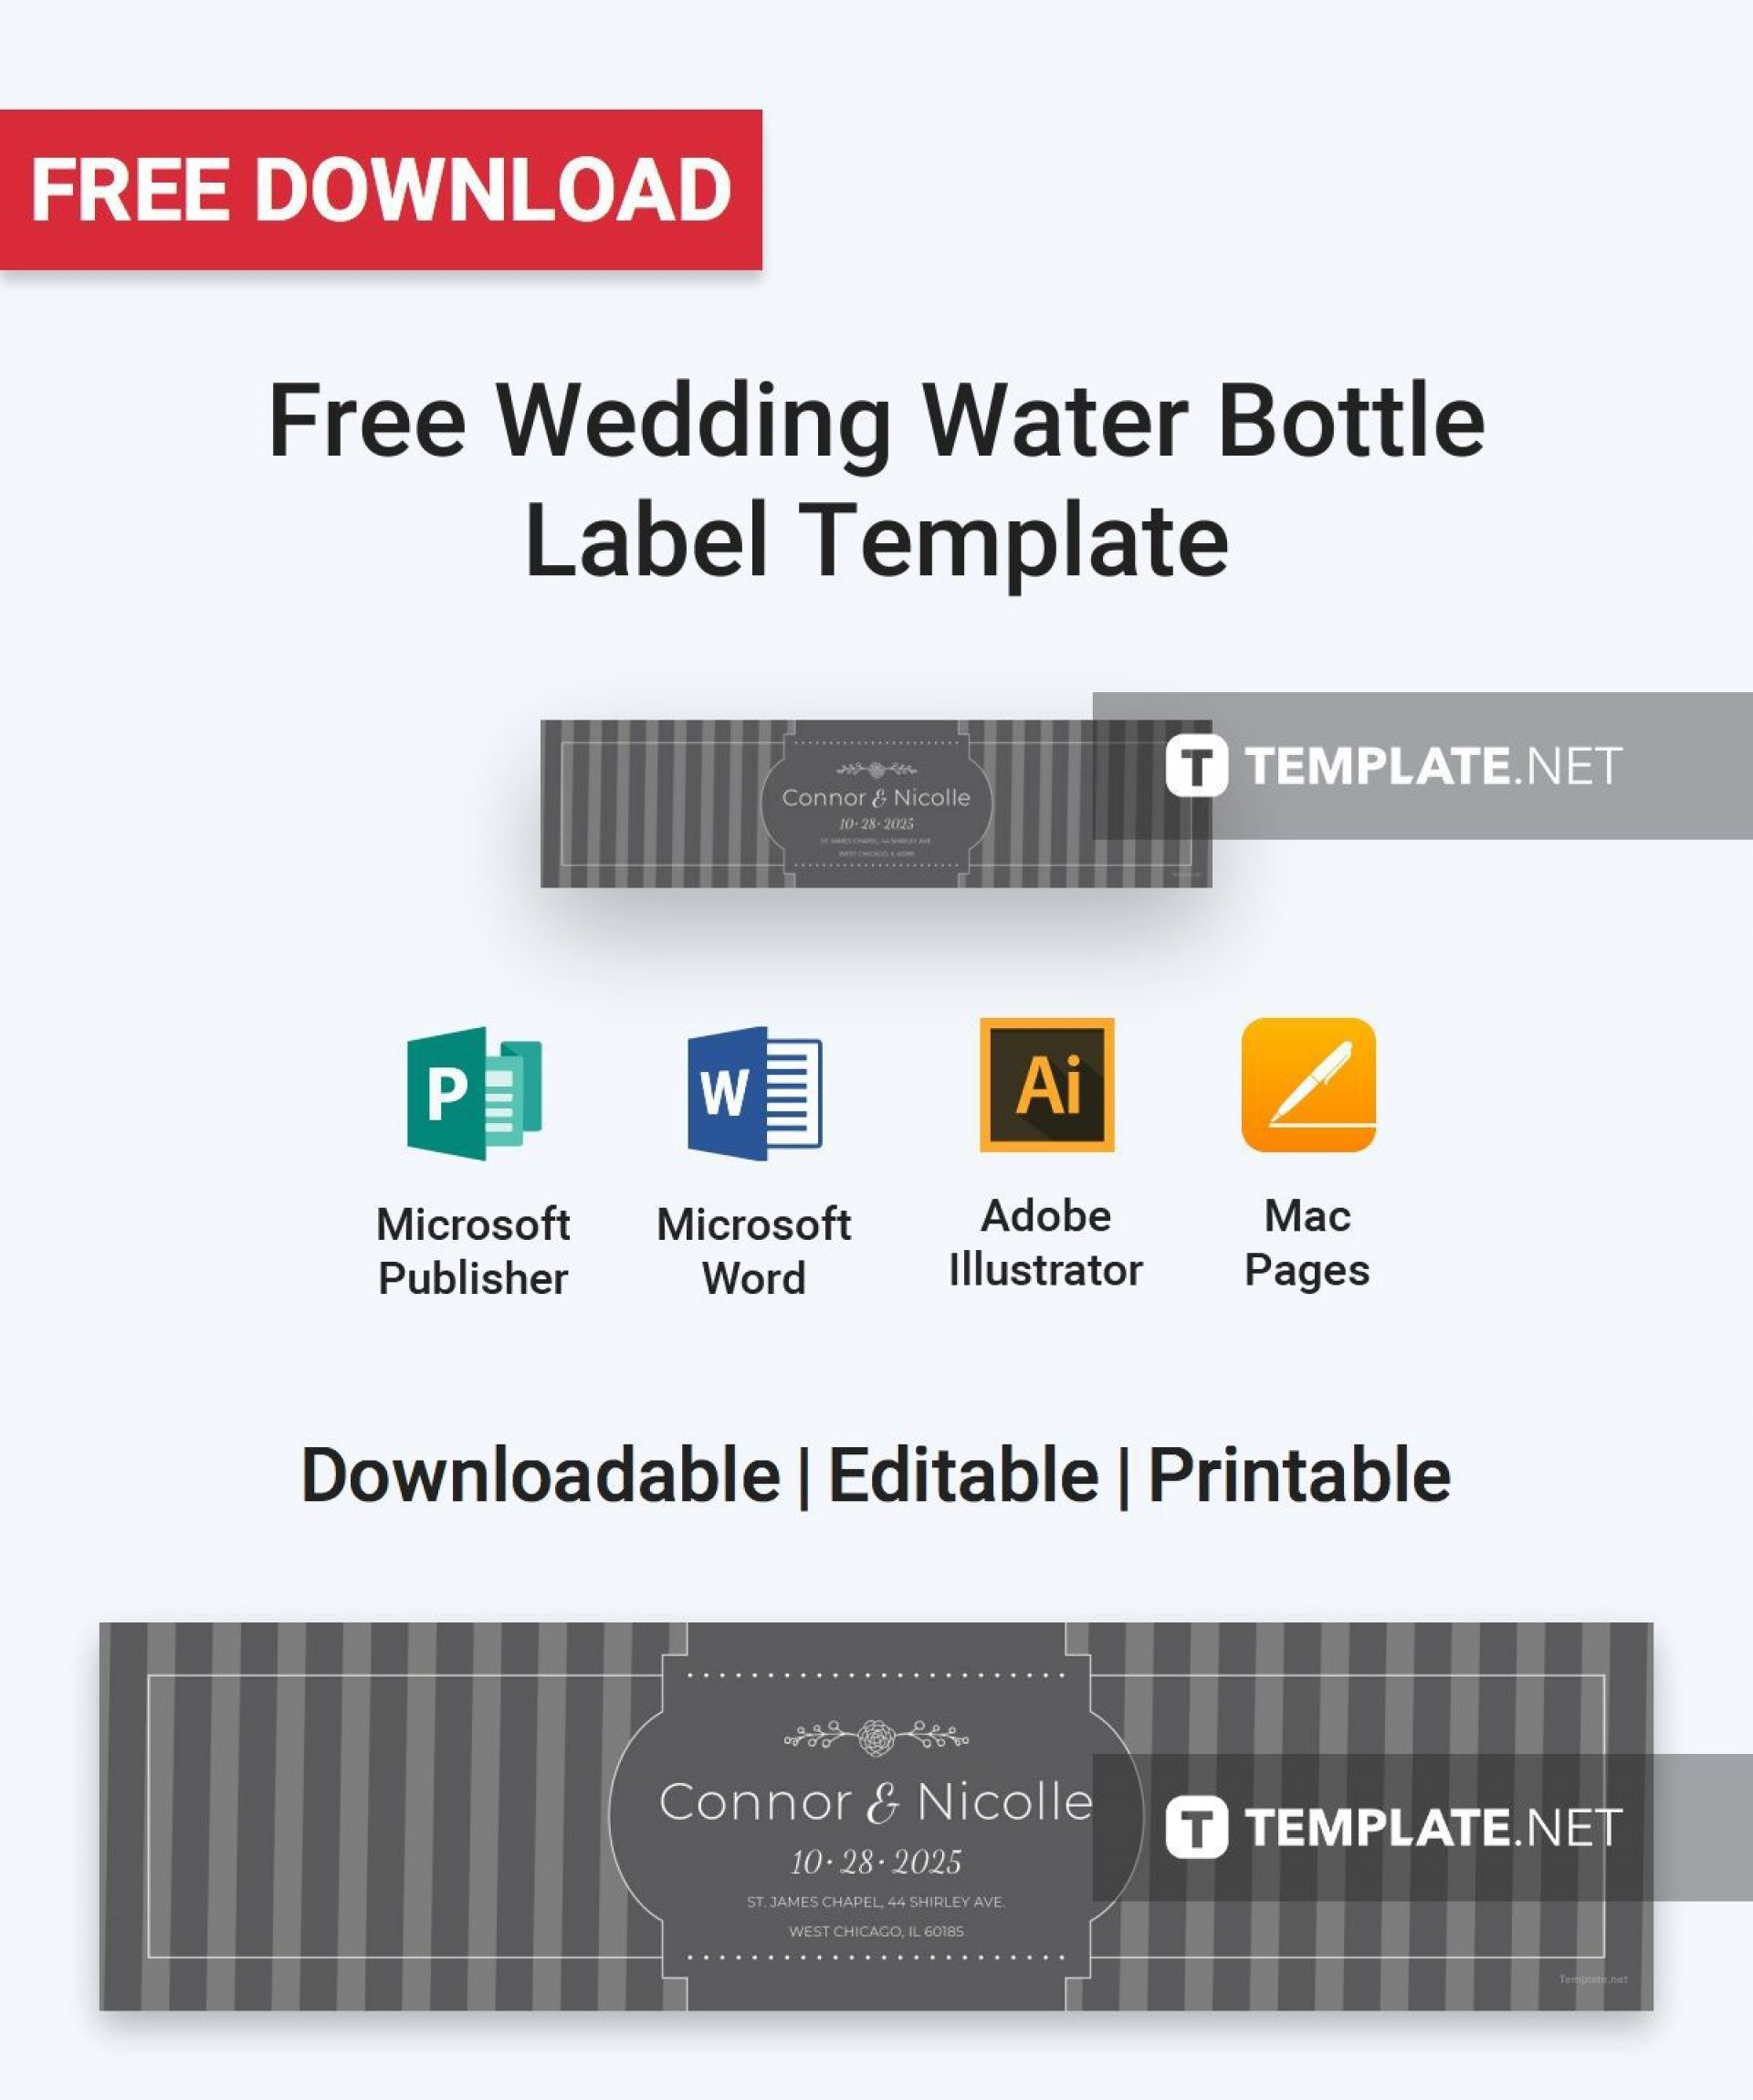 000 Fearsome Free Wedding Template For Word Water Bottle Label High Def  Labels1920